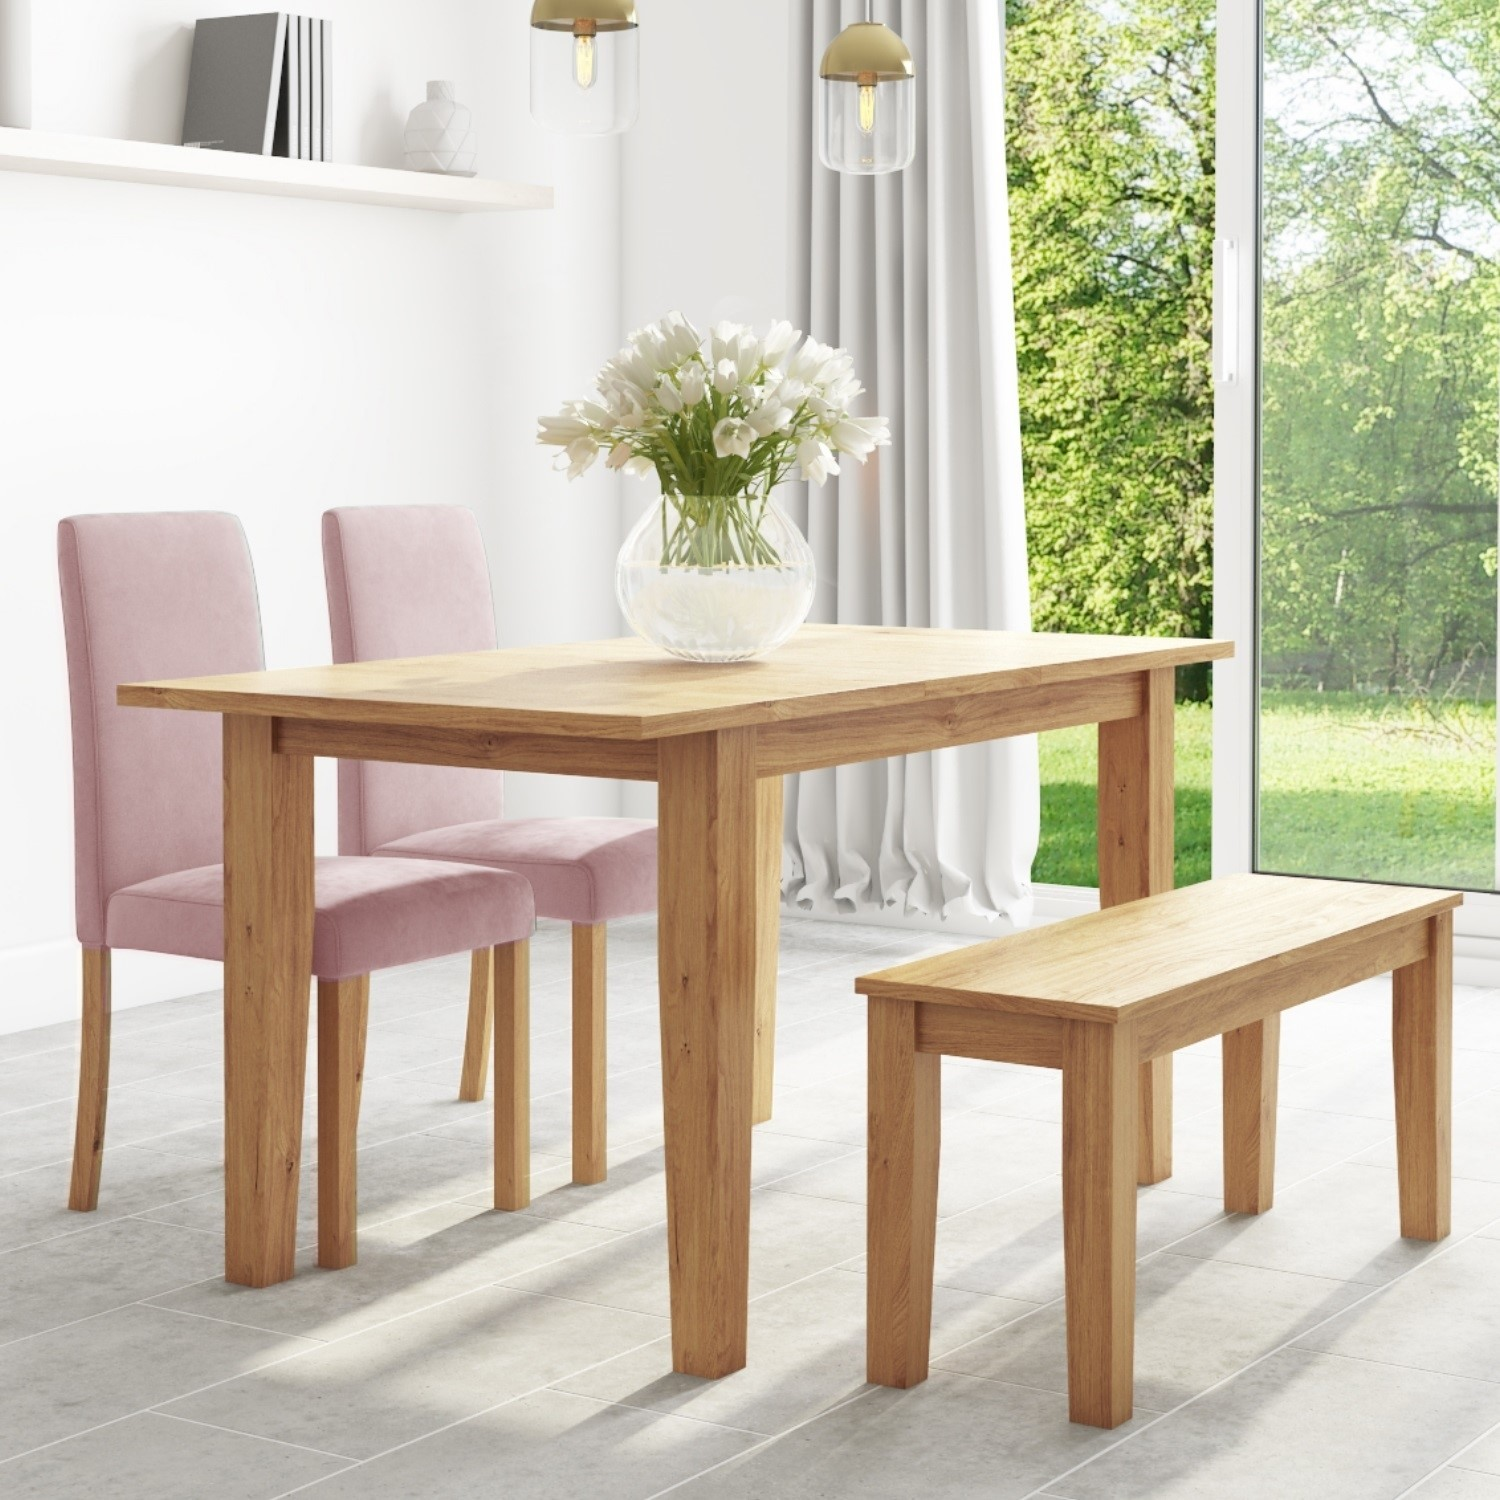 Oak Extendable Dining Table with 2 Pink Velvet Chairs & 1 Bench - New Haven